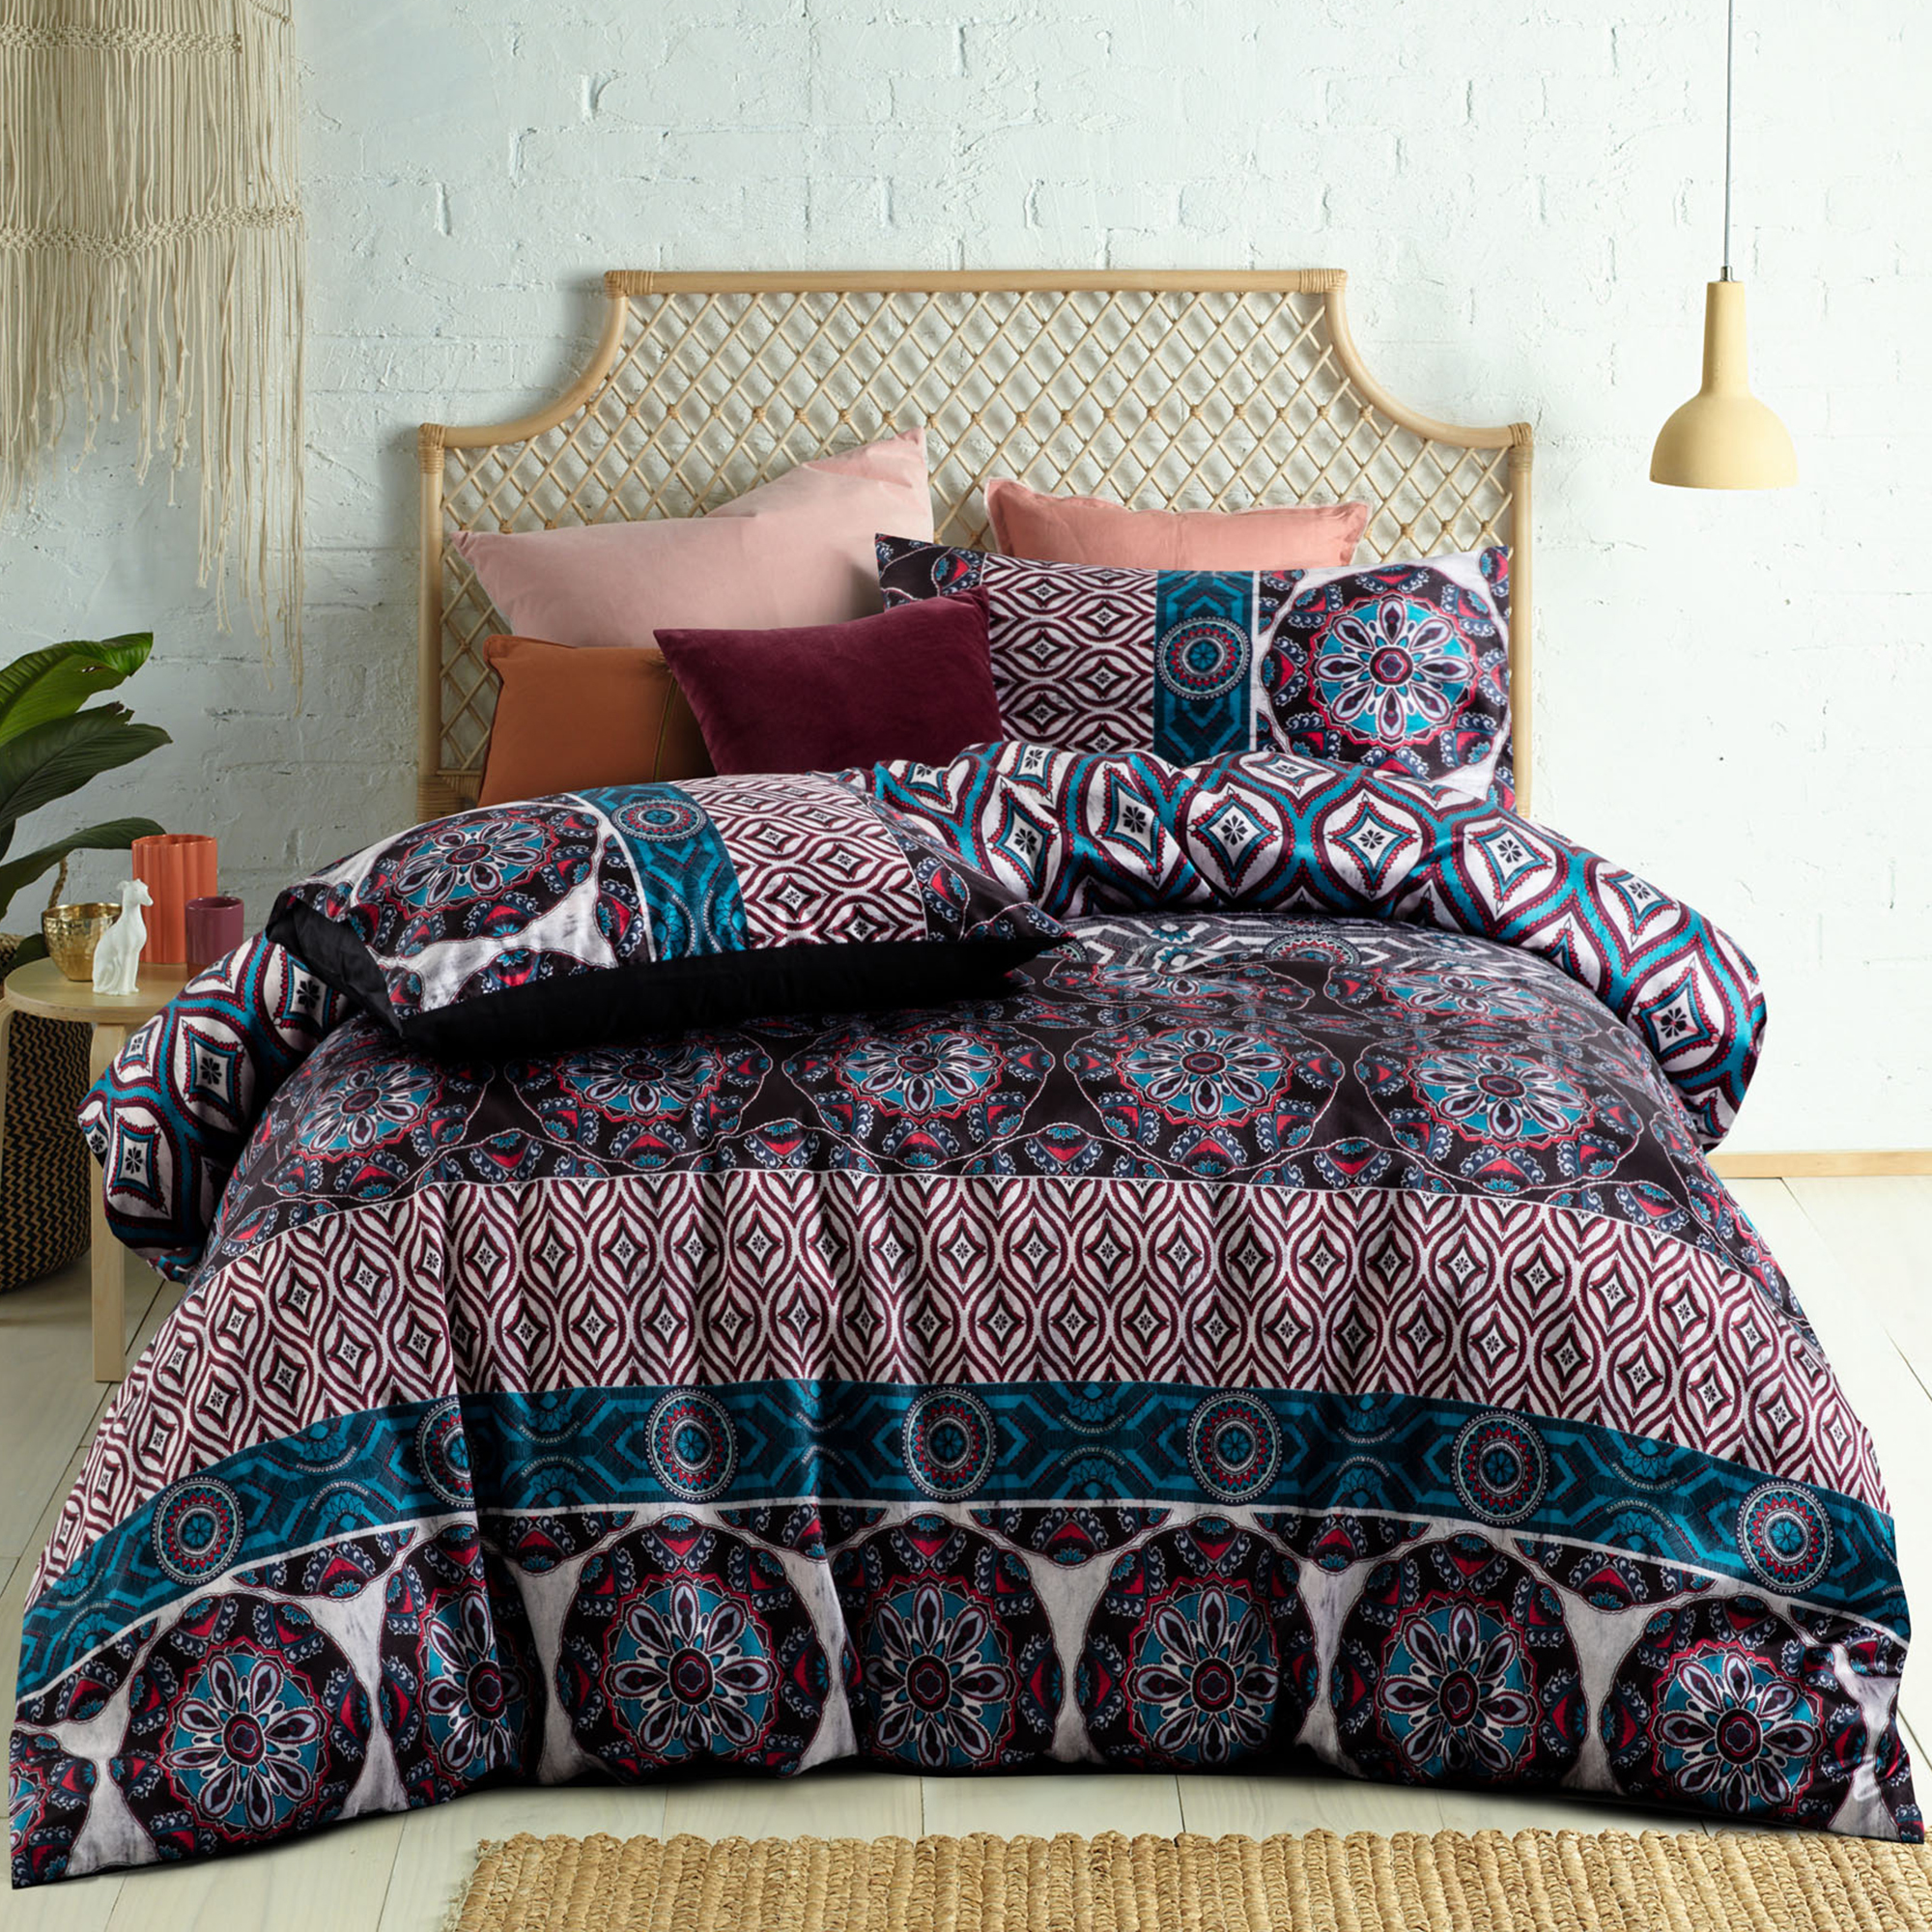 NEW-Dobbie-Digital-Printed-Quilt-Cover-Set-Accessorize-Quilt-Covers